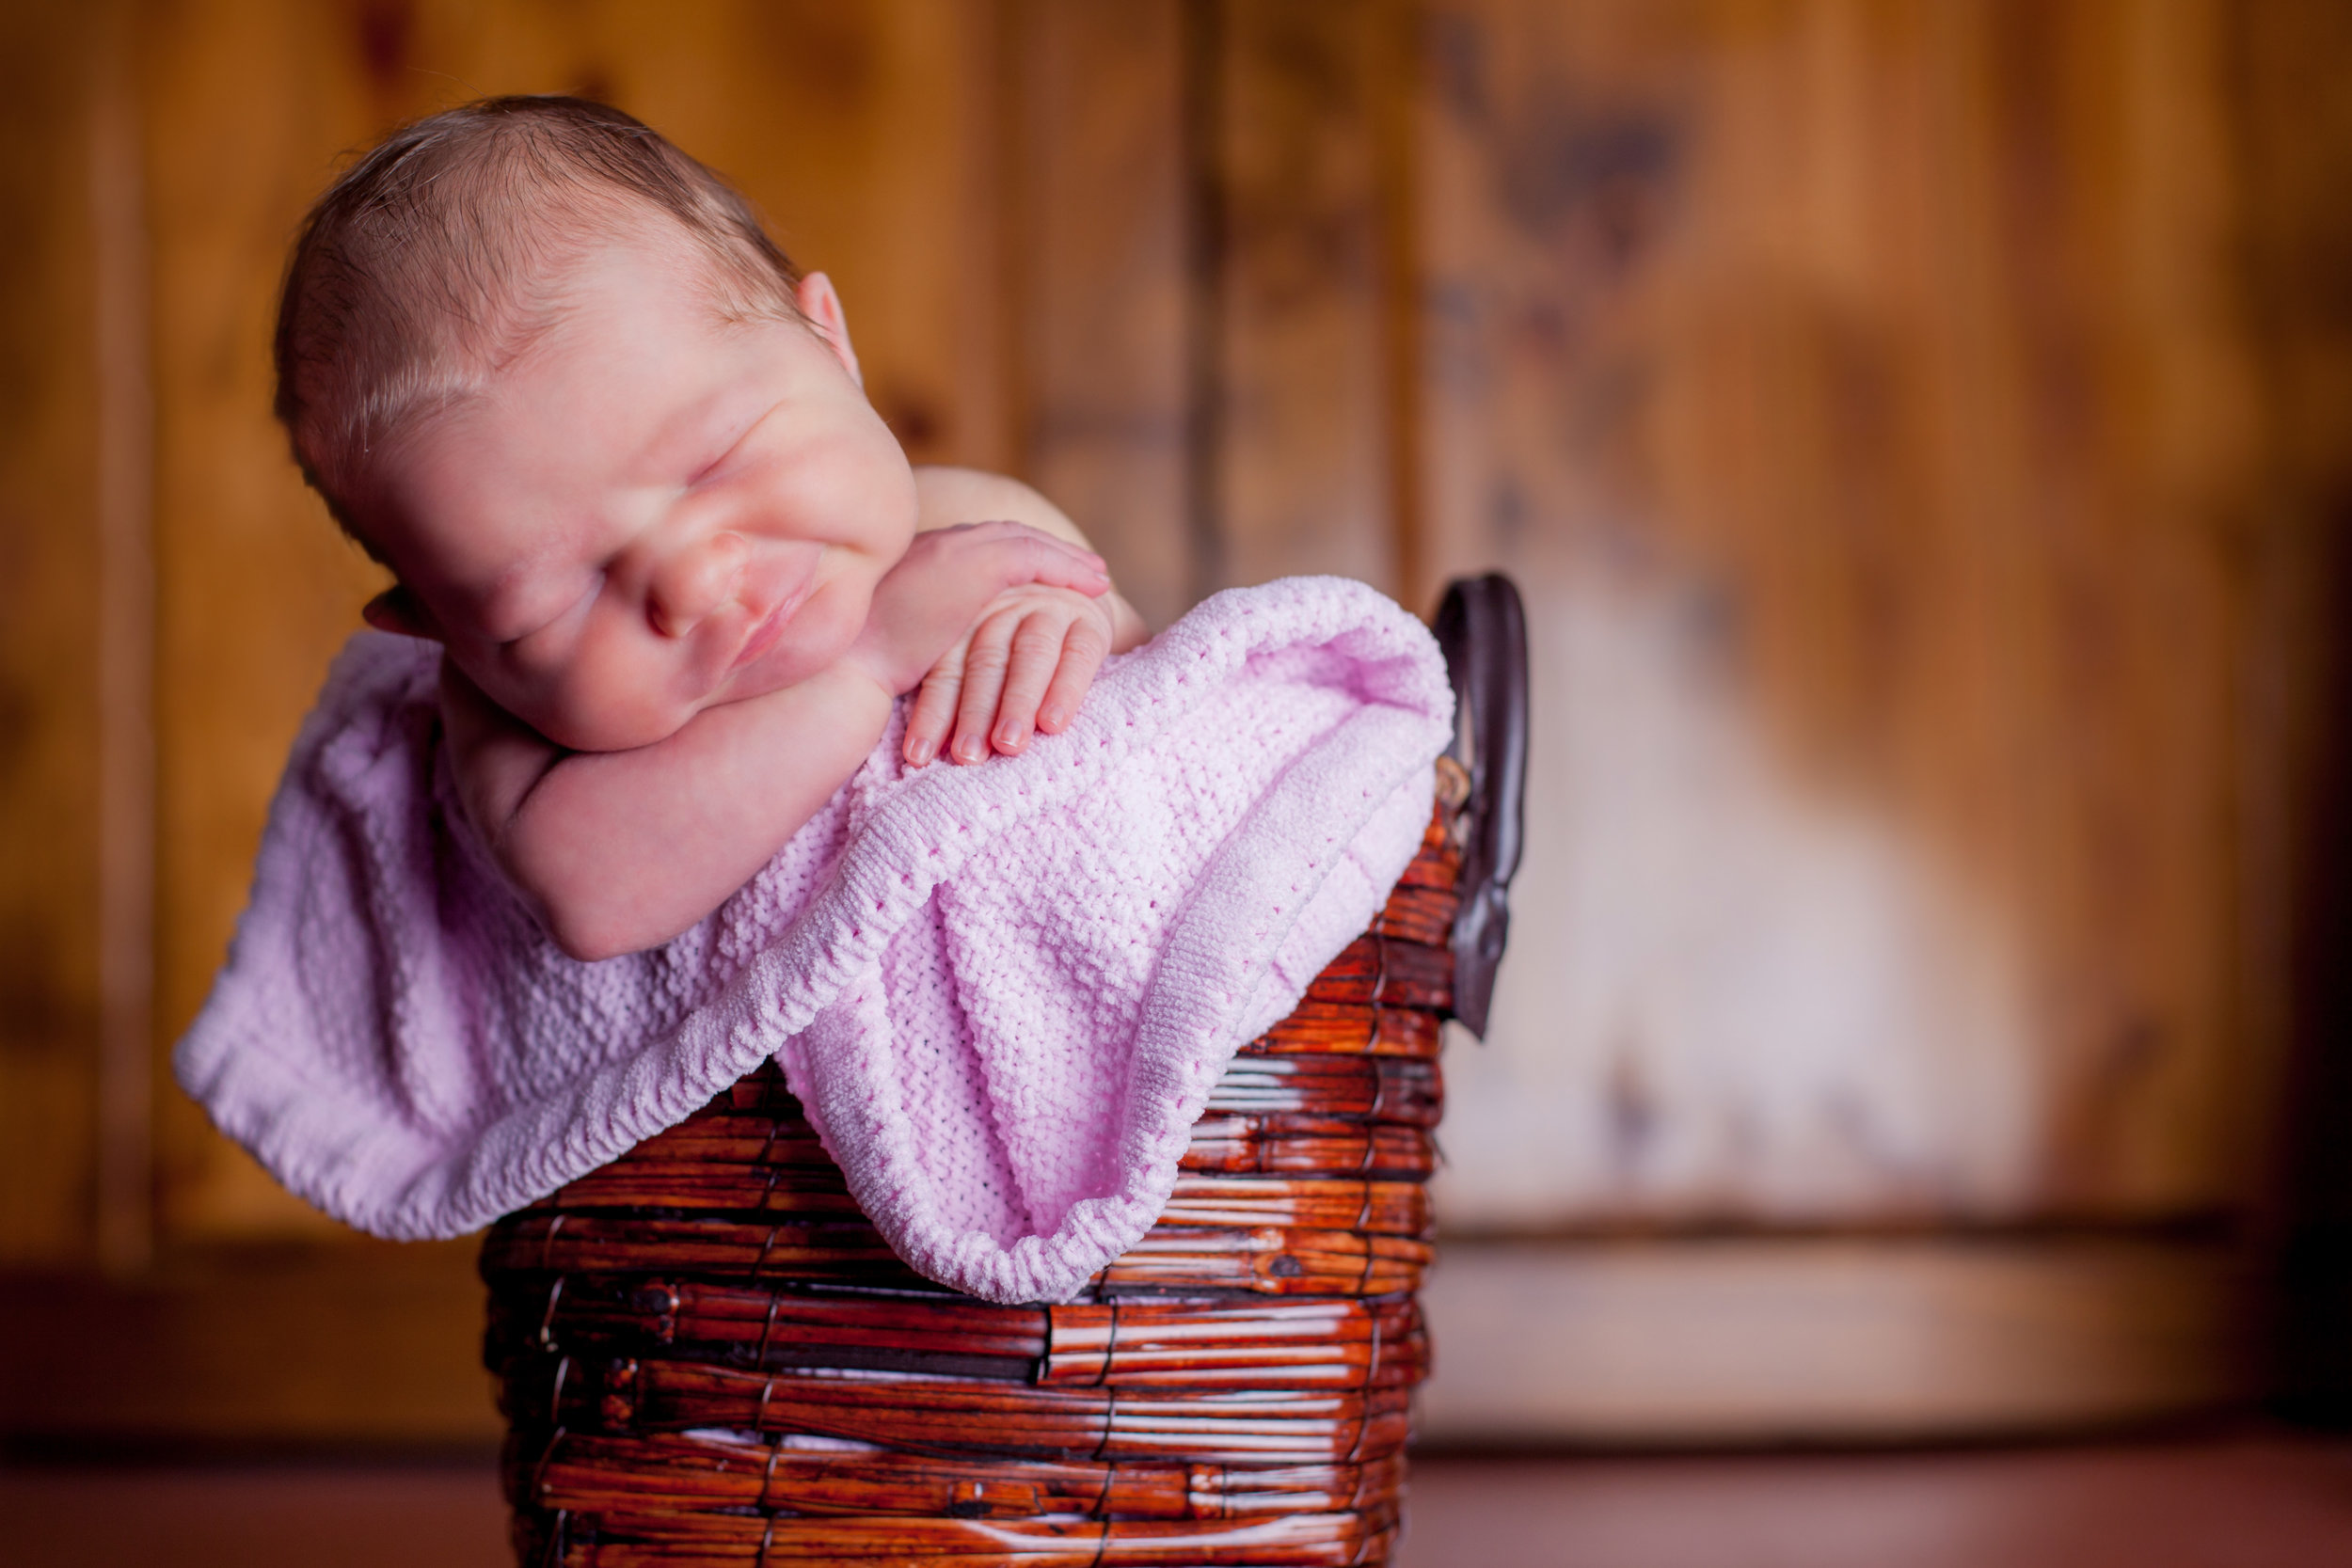 Nothing like a baby in a basket. -